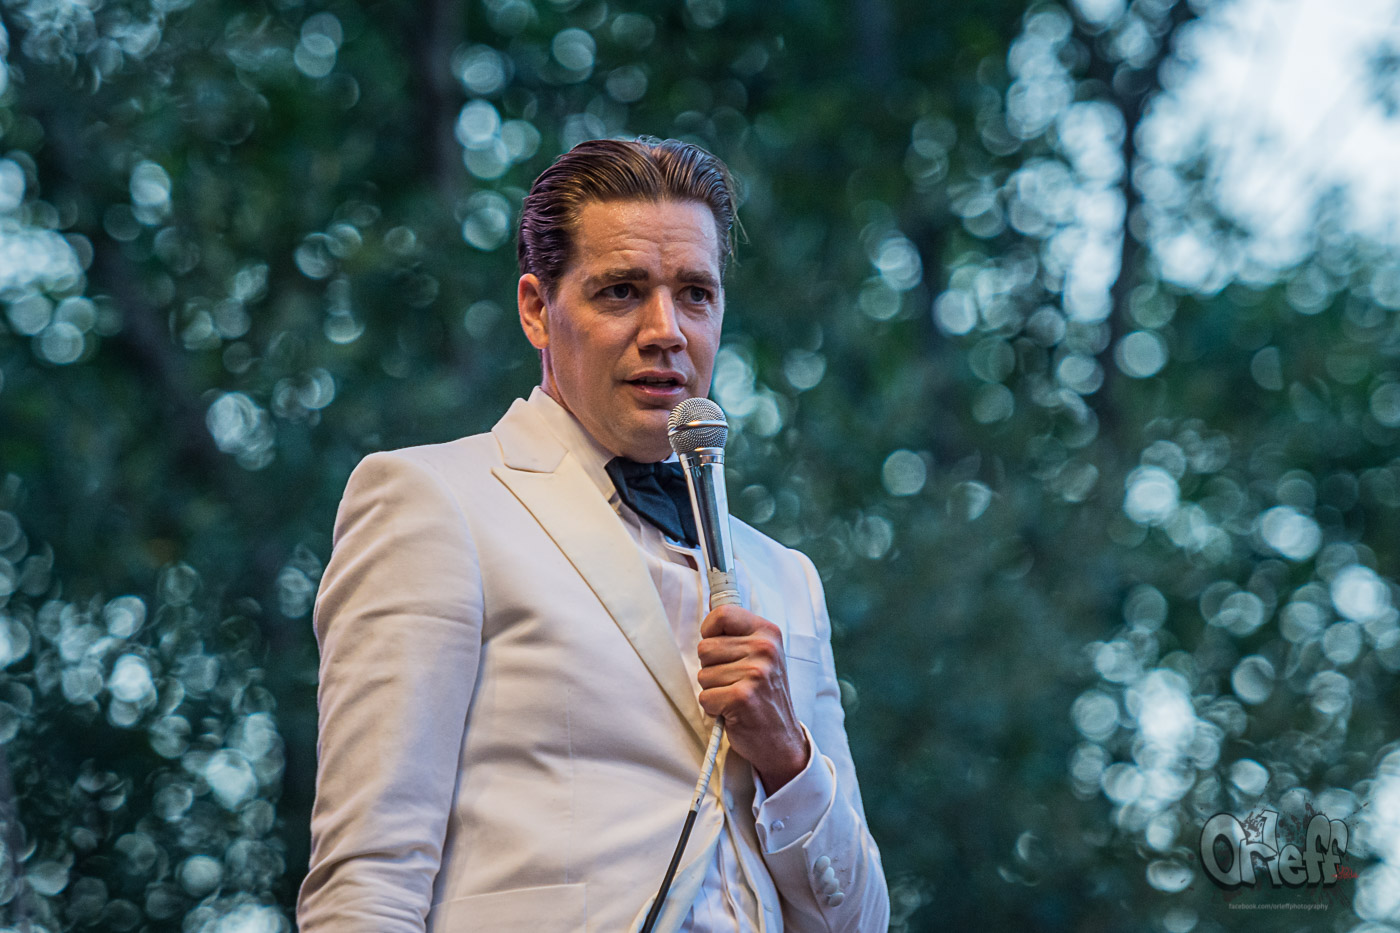 The Hives @ INmusic festival, 2019